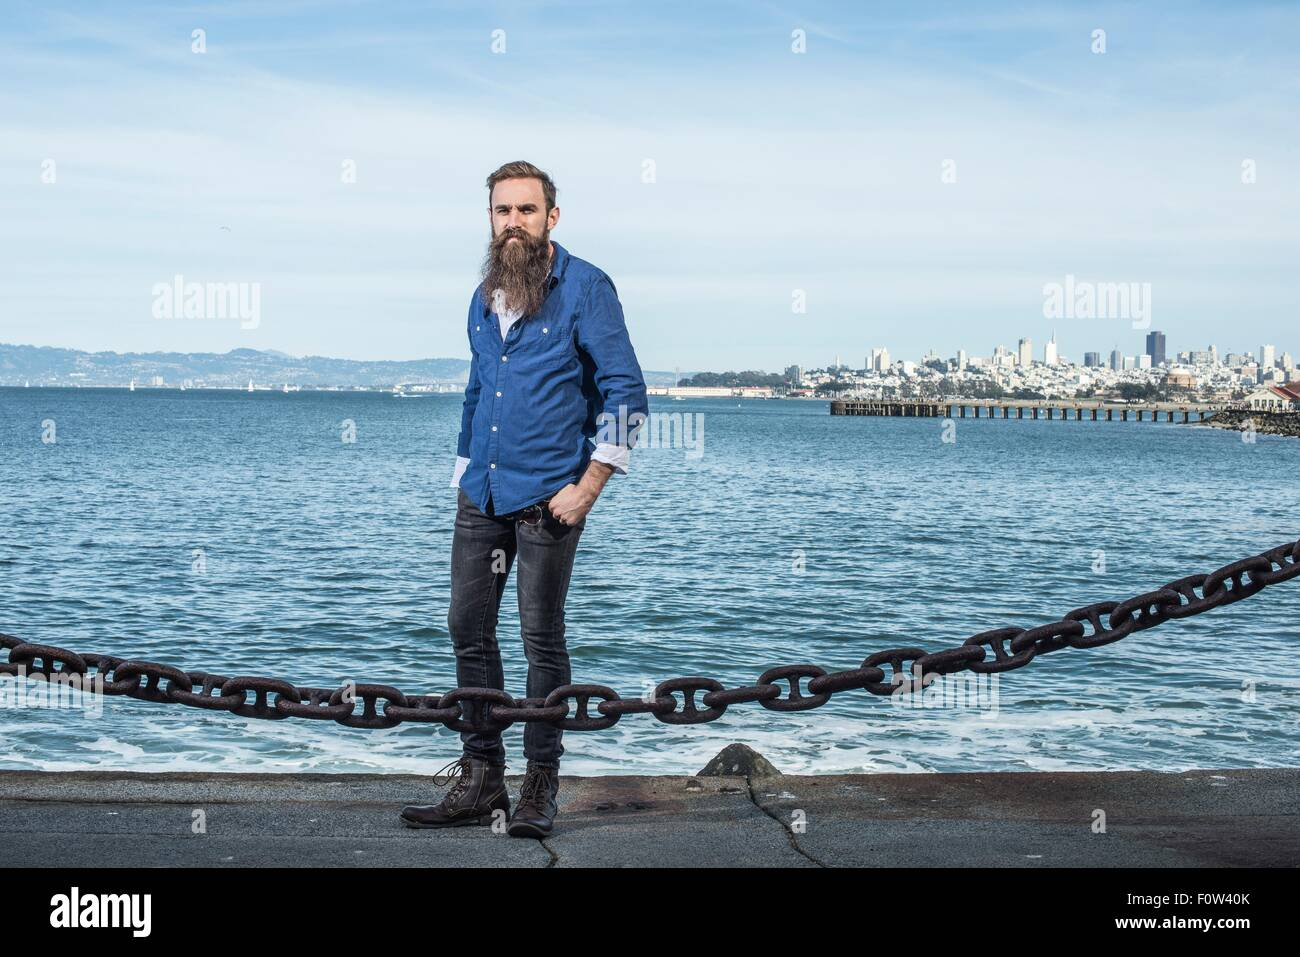 Man with beard standing at Port Point, San Francisco, California, USA - Stock Image